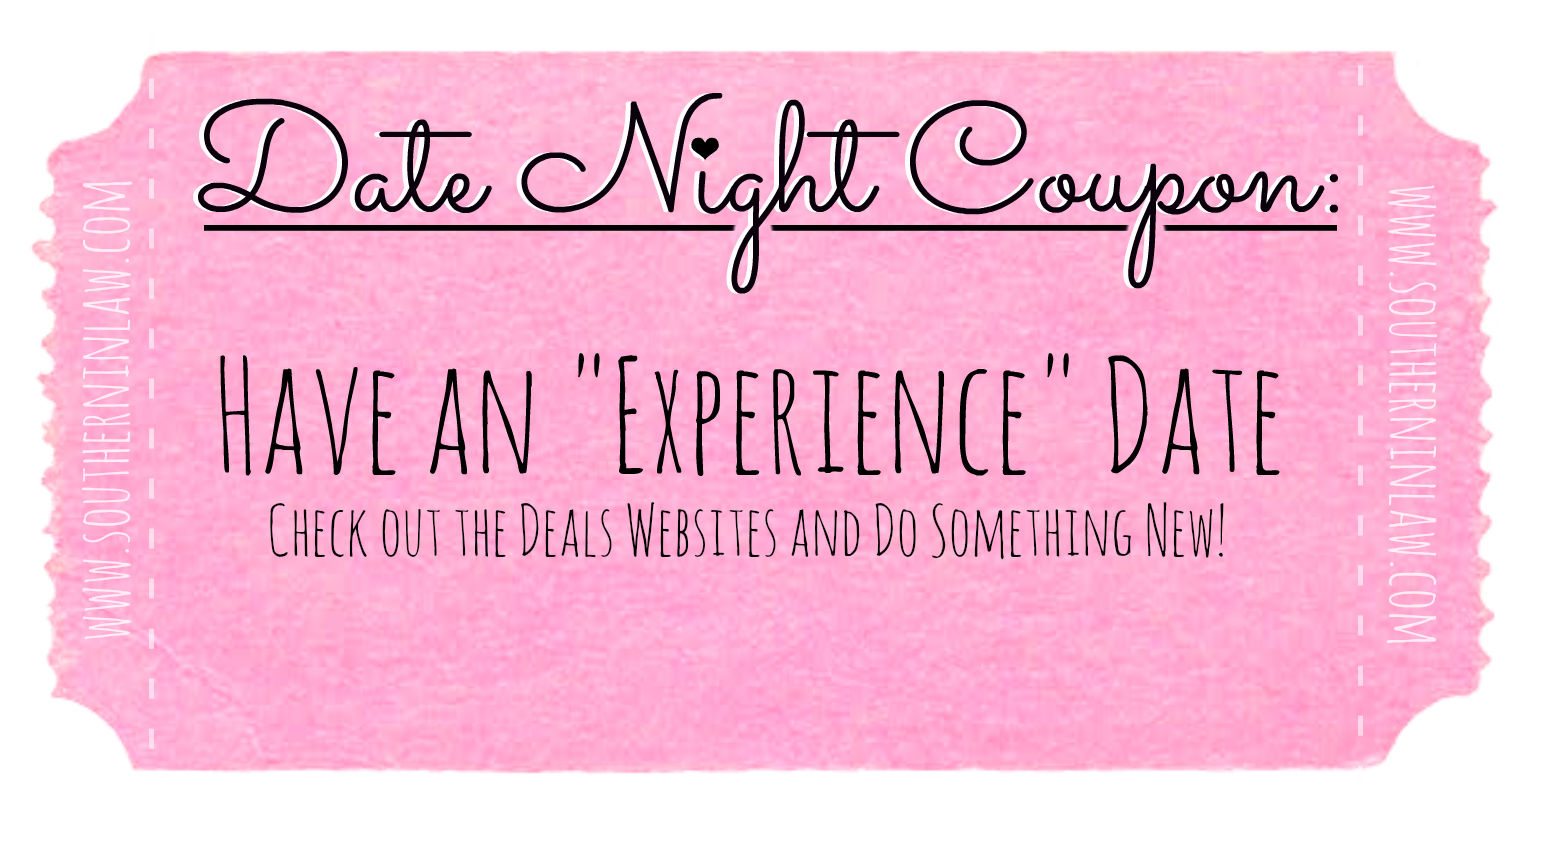 Affordable Date Ideas - Cheap Date Ideas Coupons - Have an Experience Date